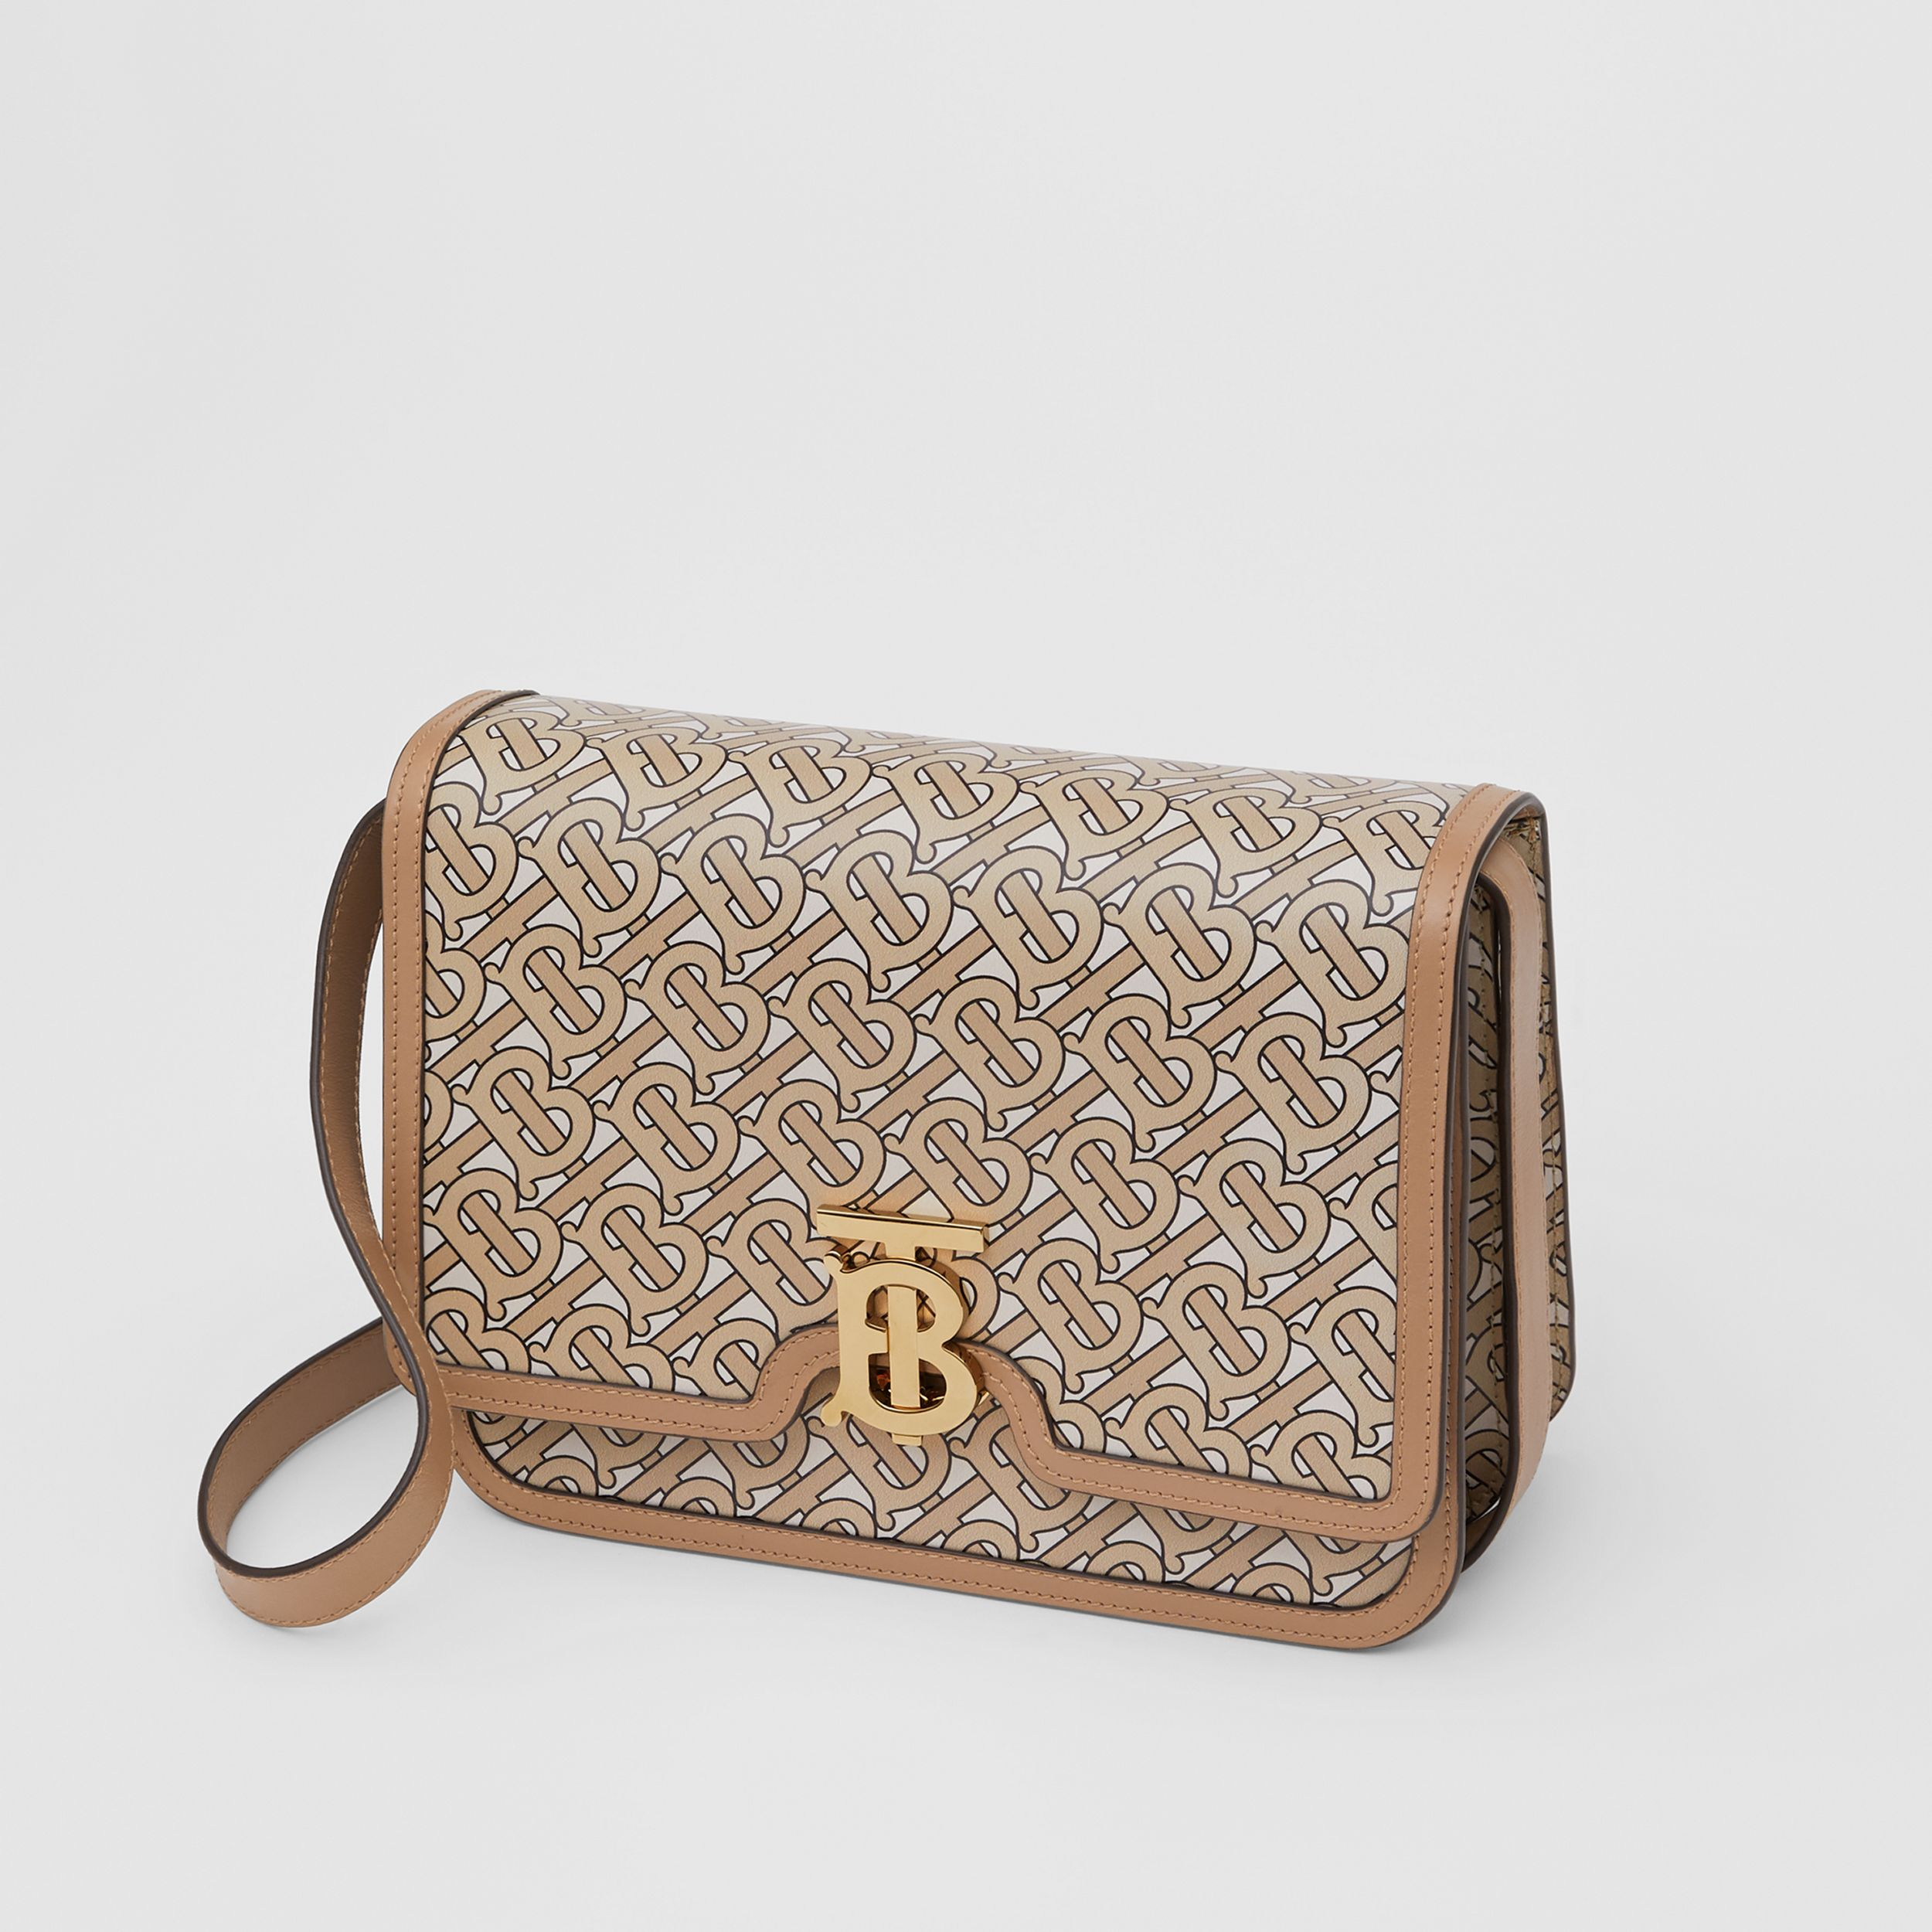 Medium Monogram Print Leather TB Bag in Beige | Burberry - 4